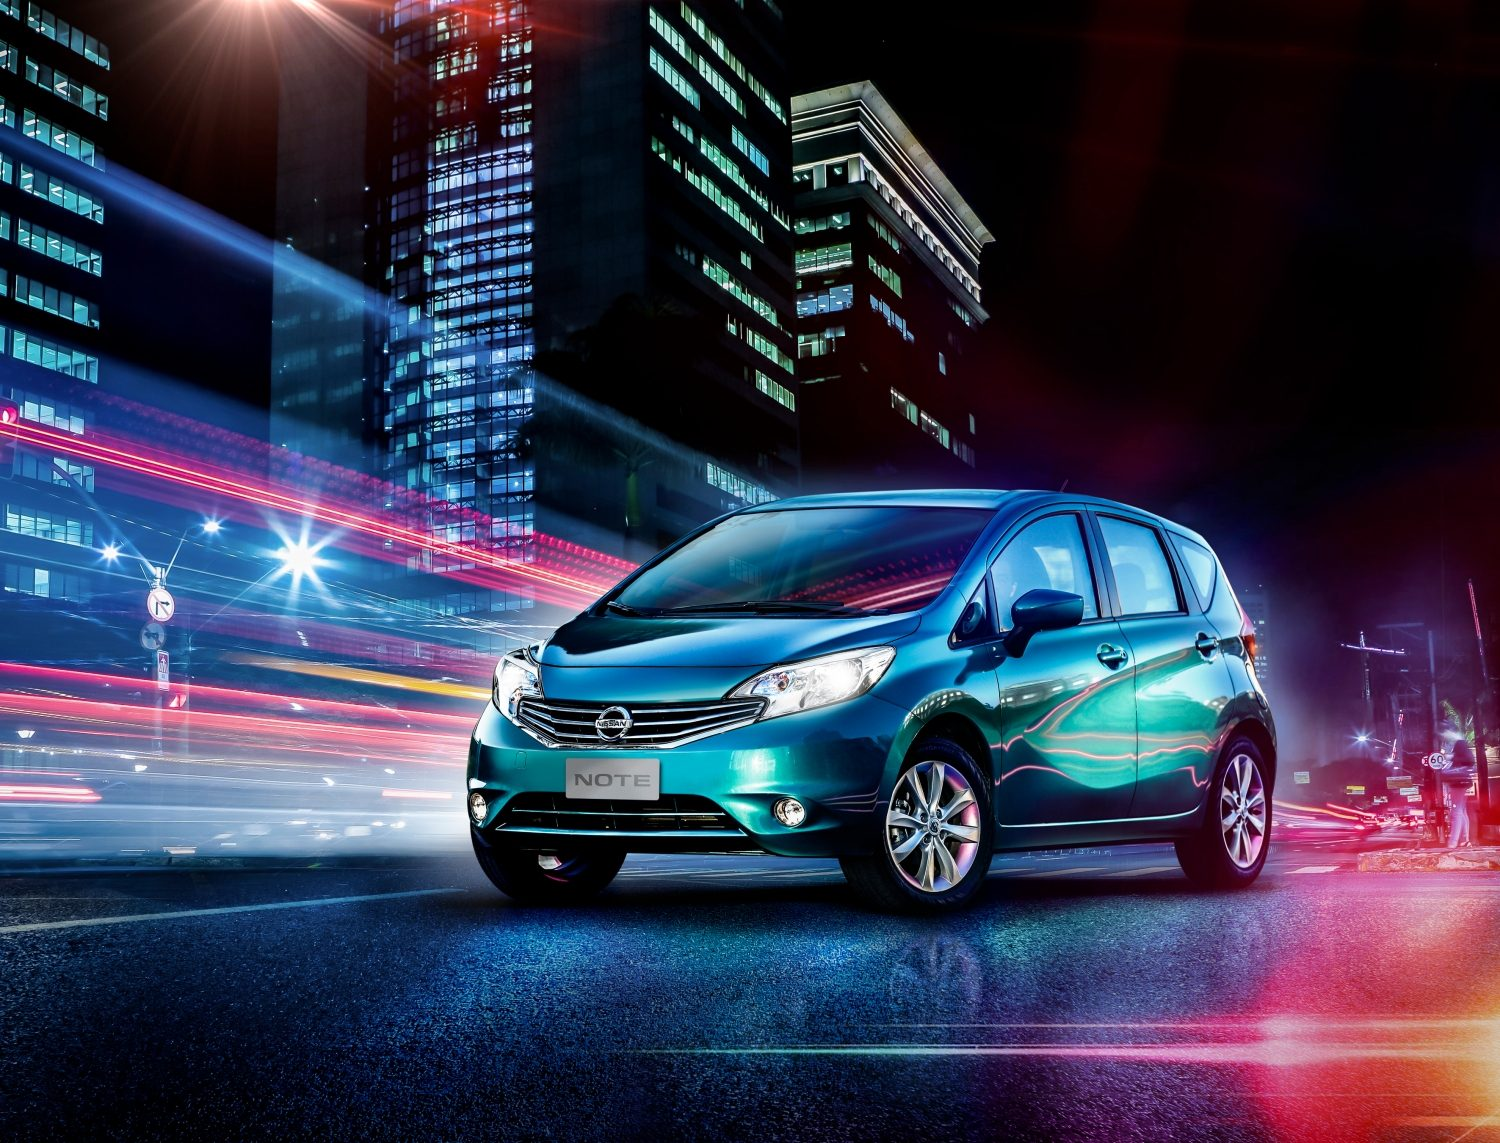 Nissan Note AR 0001.jpg.ximg.l_full_m.smart